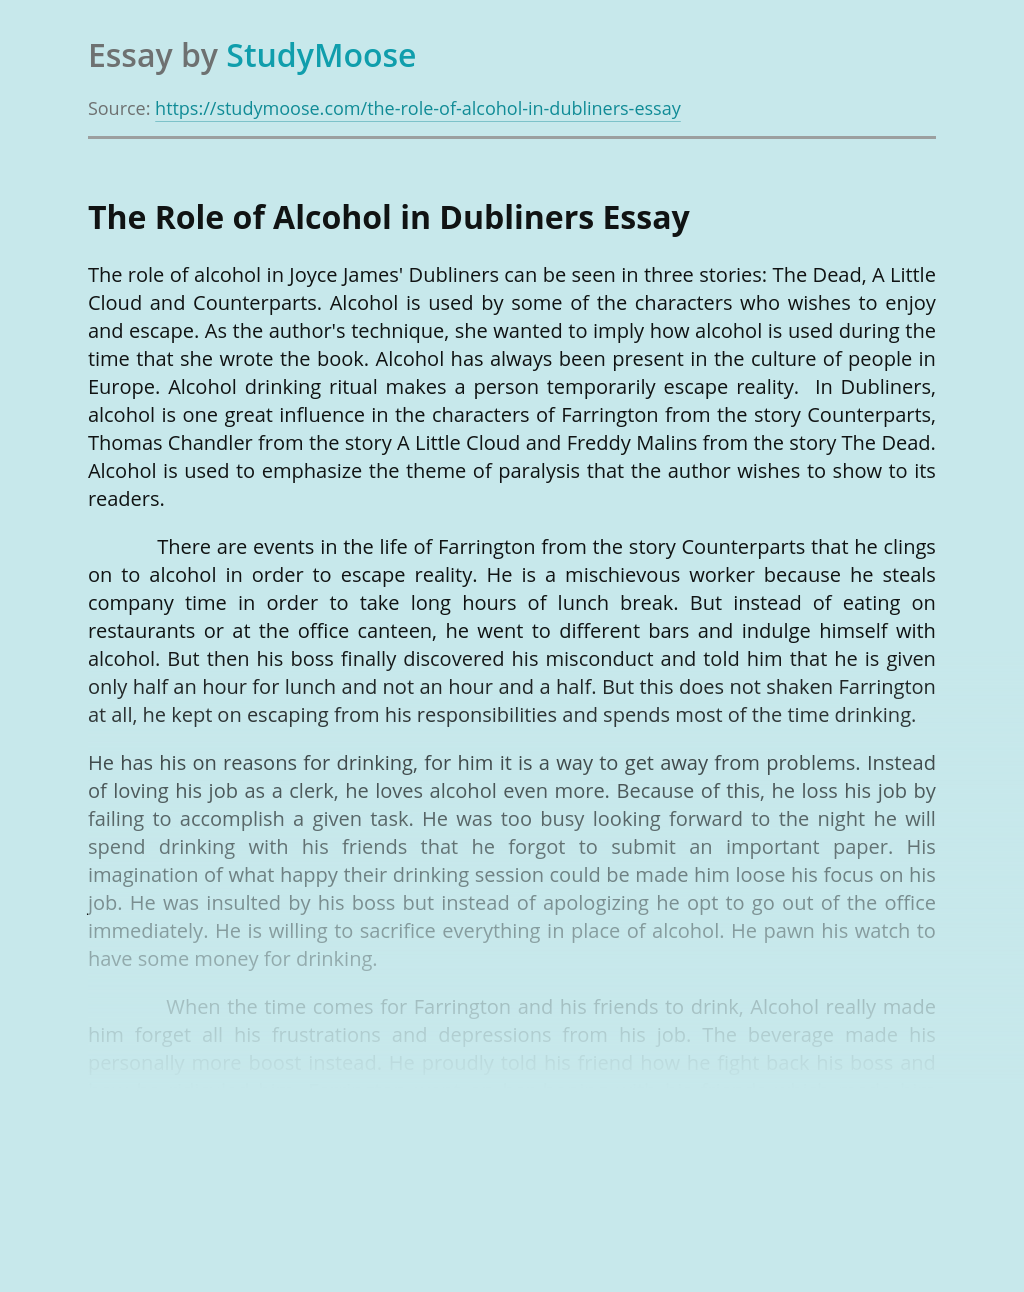 The Role of Alcohol in Dubliners